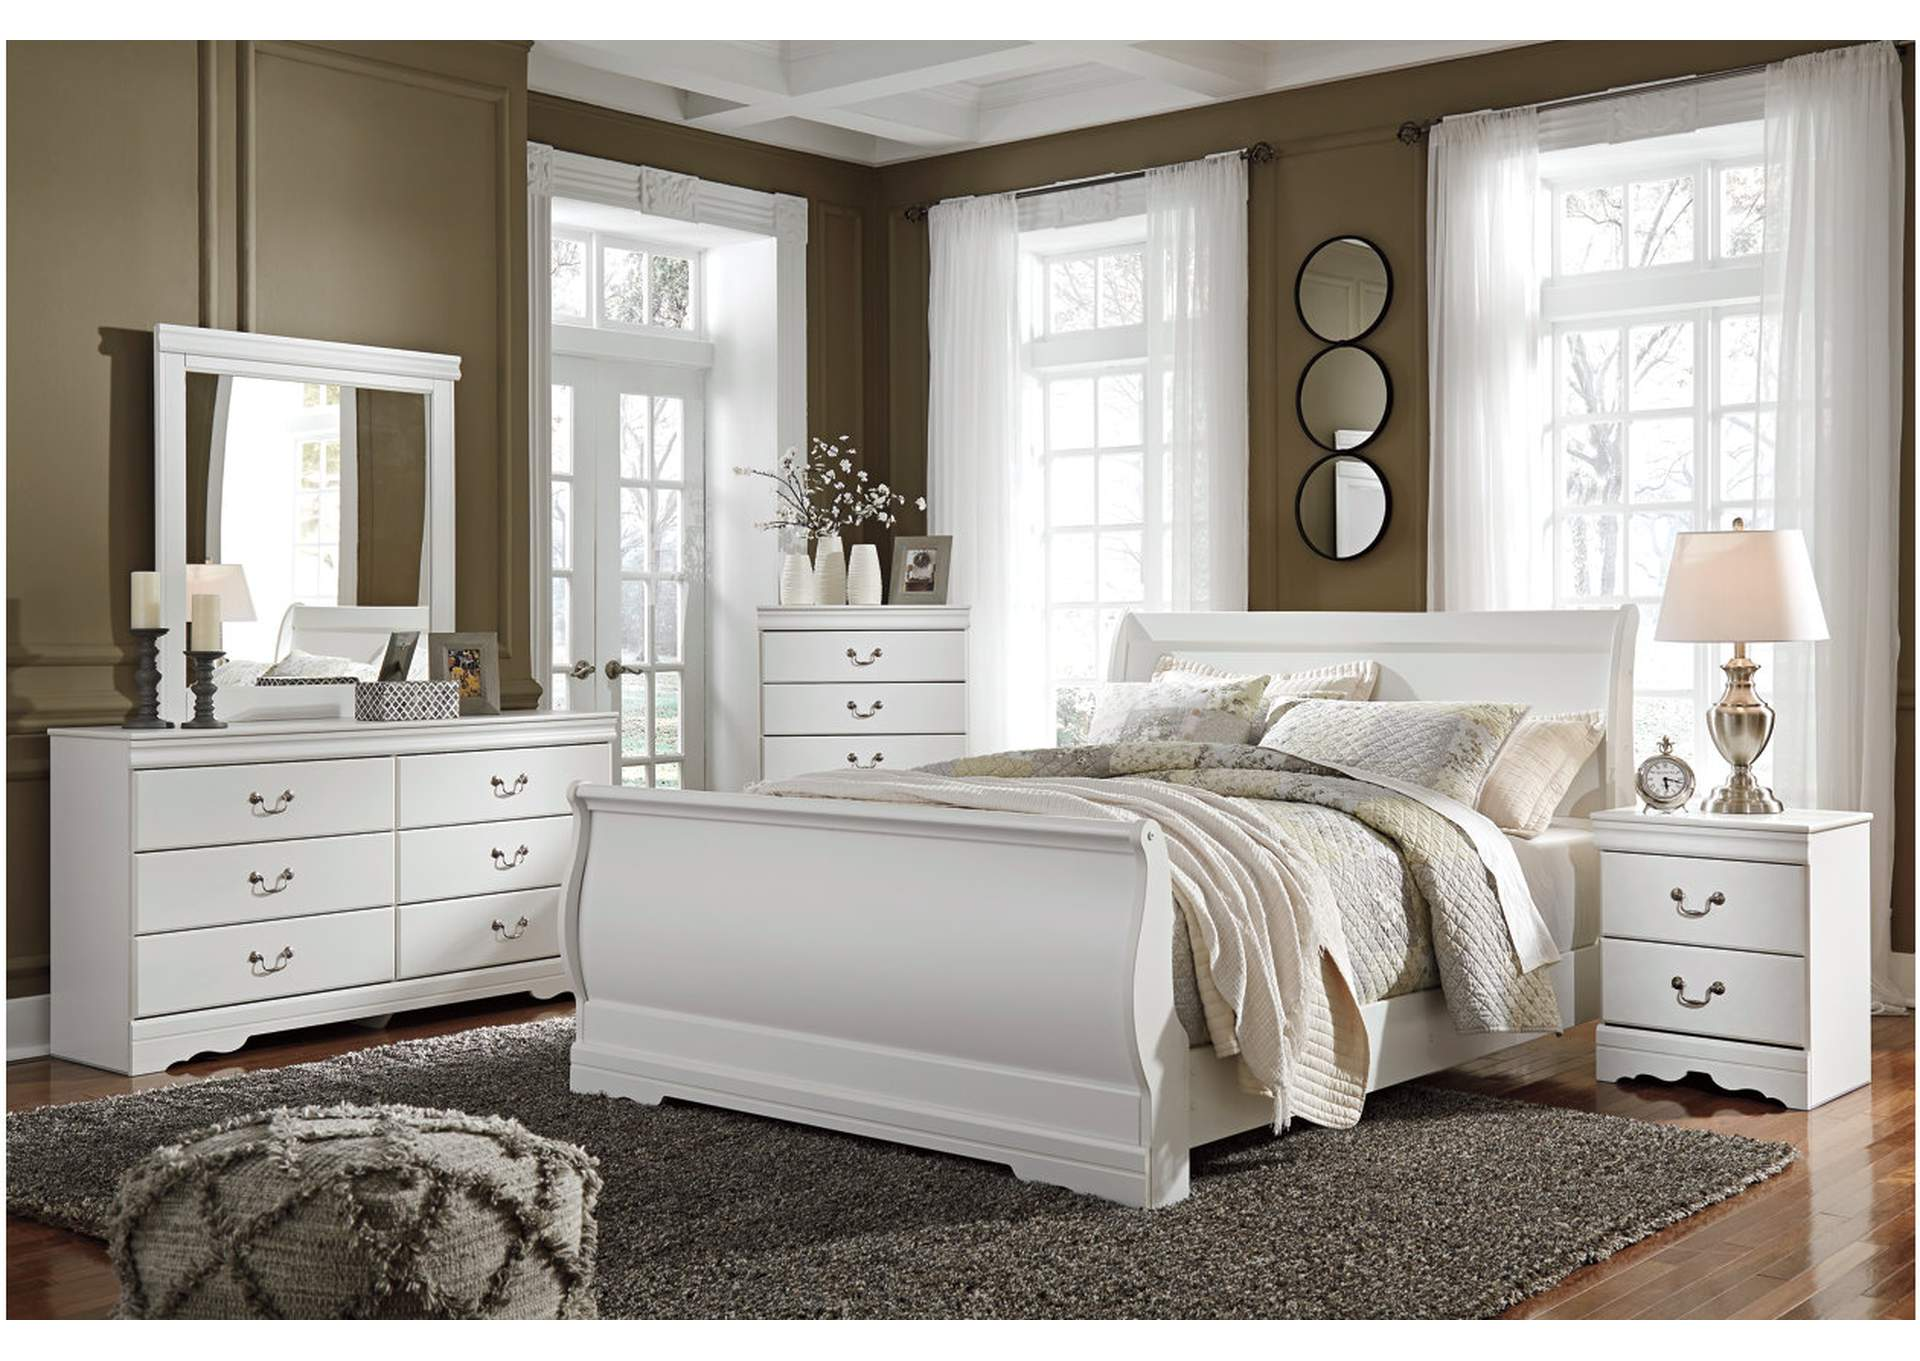 Anarasia White Queen Sleigh Bed w/Dresser, Mirror, Drawer Chest & Nightstand,Signature Design By Ashley